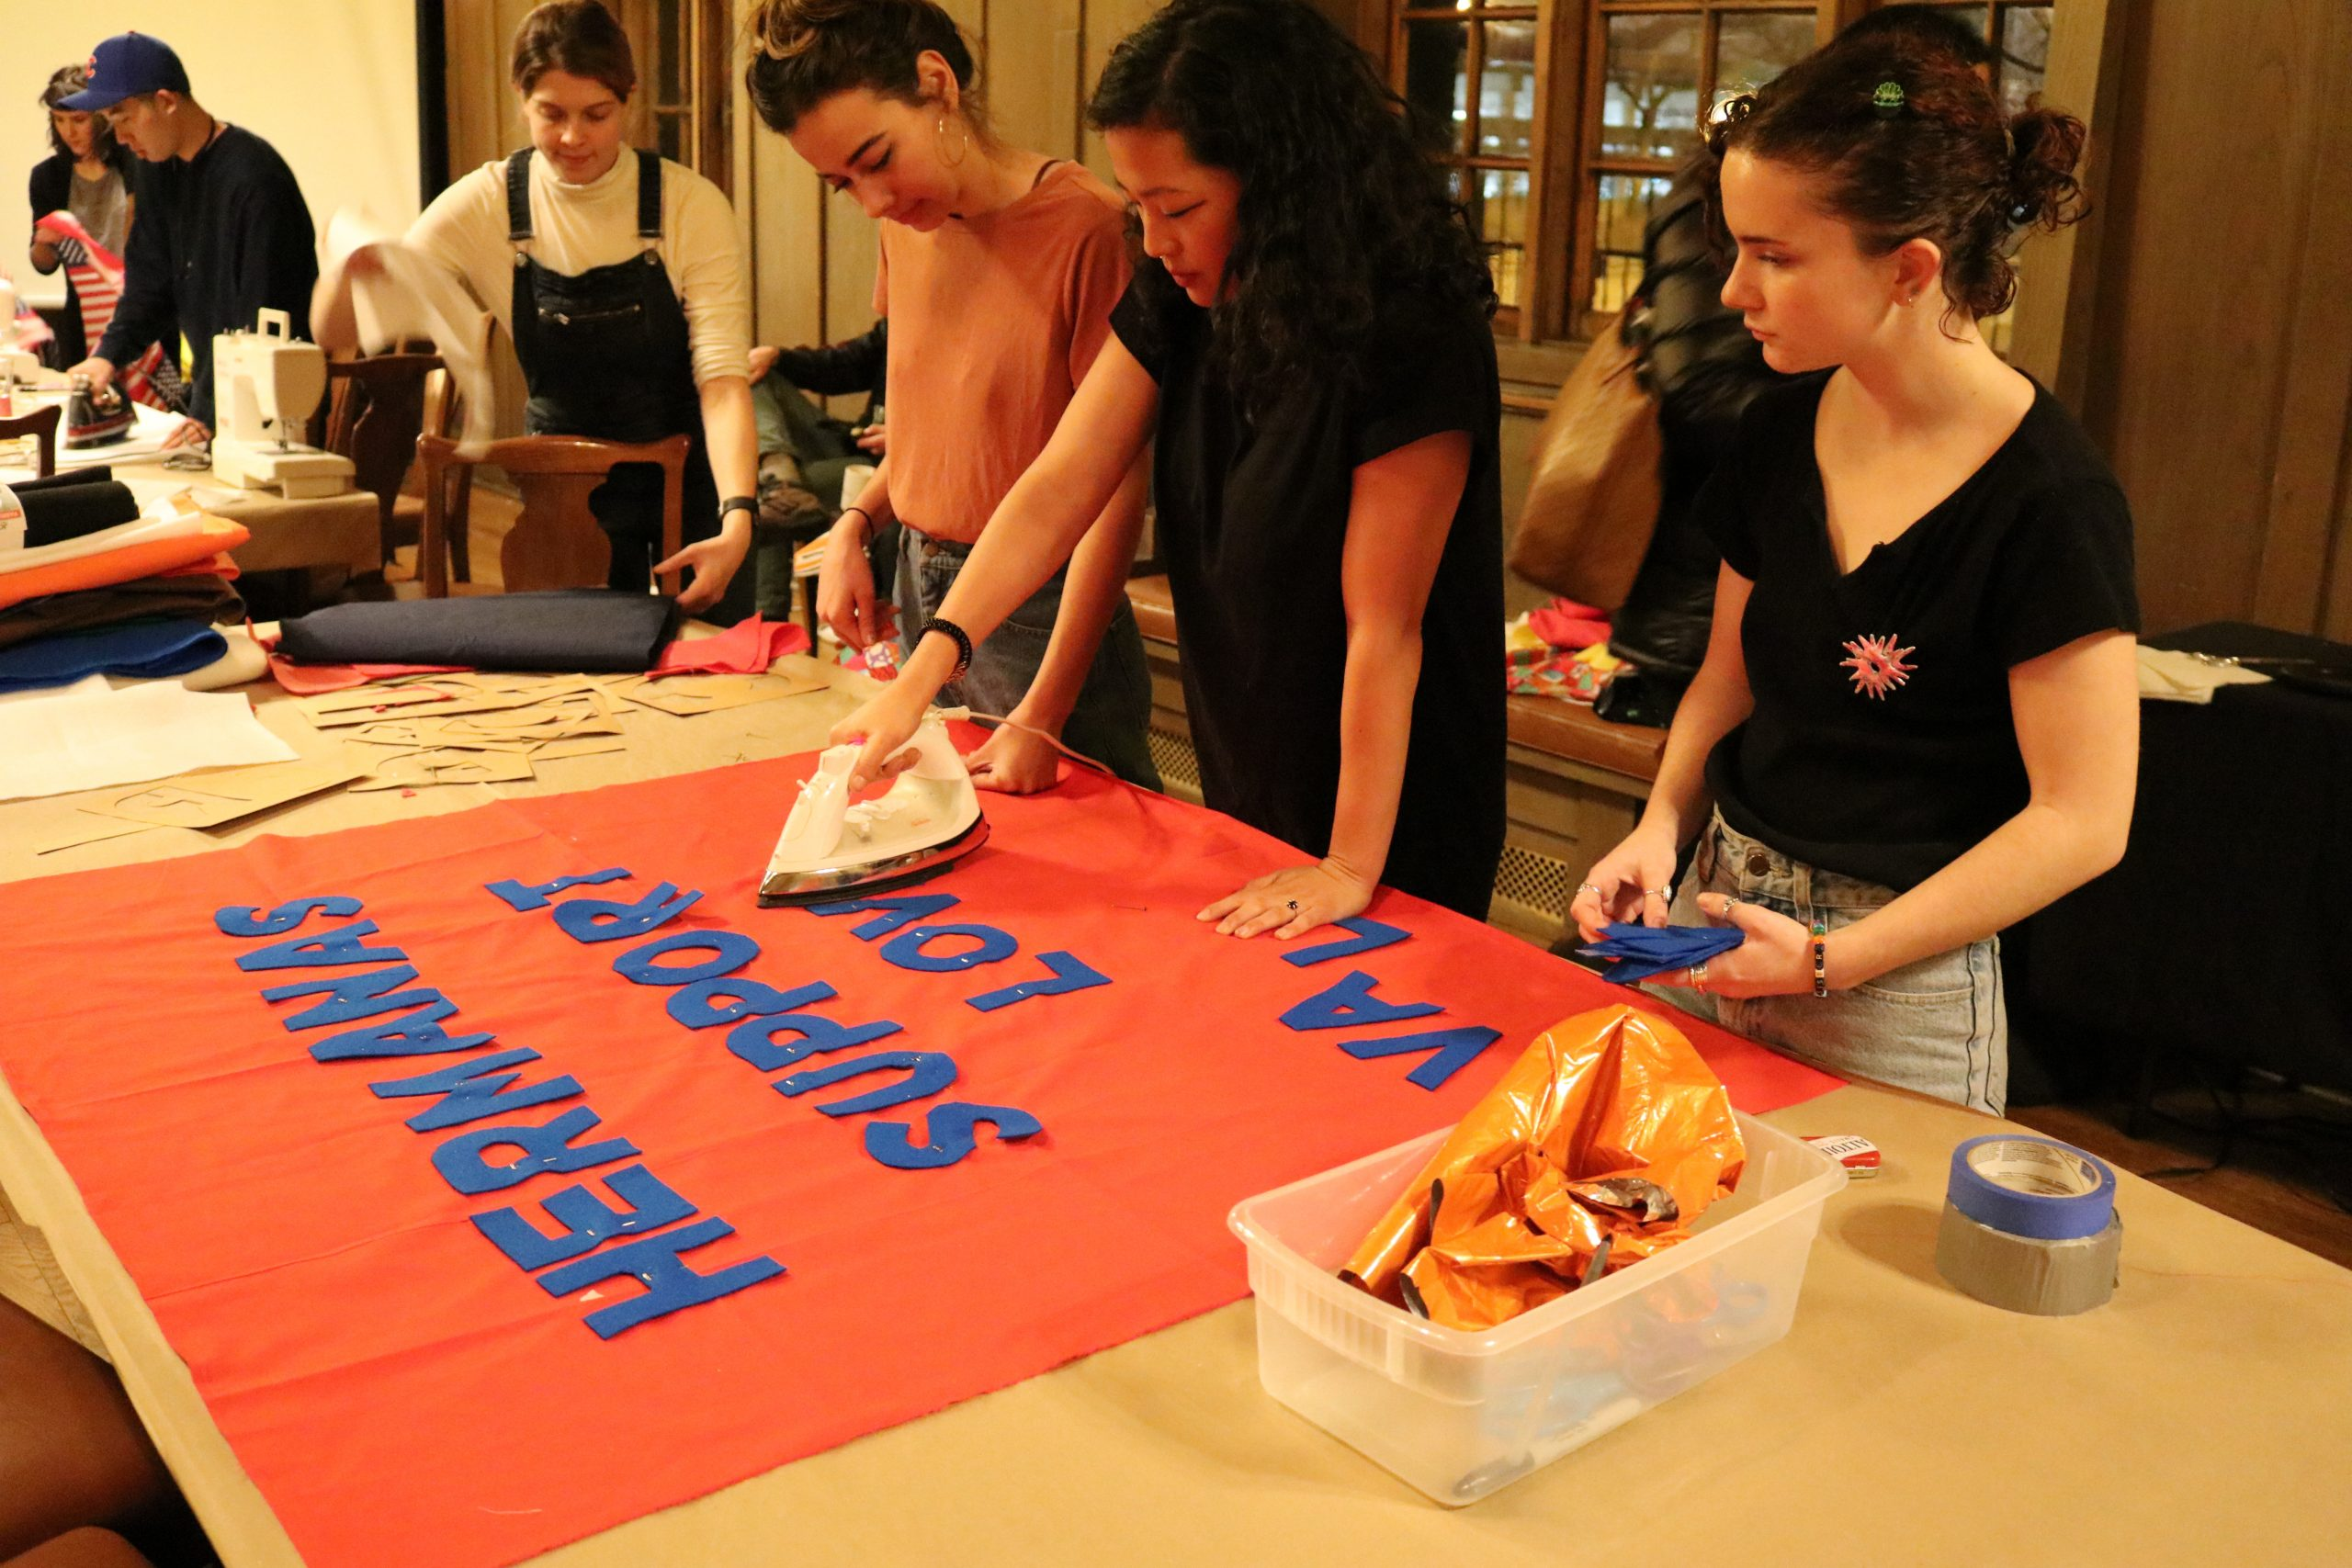 Protest Banner Workshop in the Protest Banner Learning Library at the Jane Addams Hull House, Chicago, 2017.